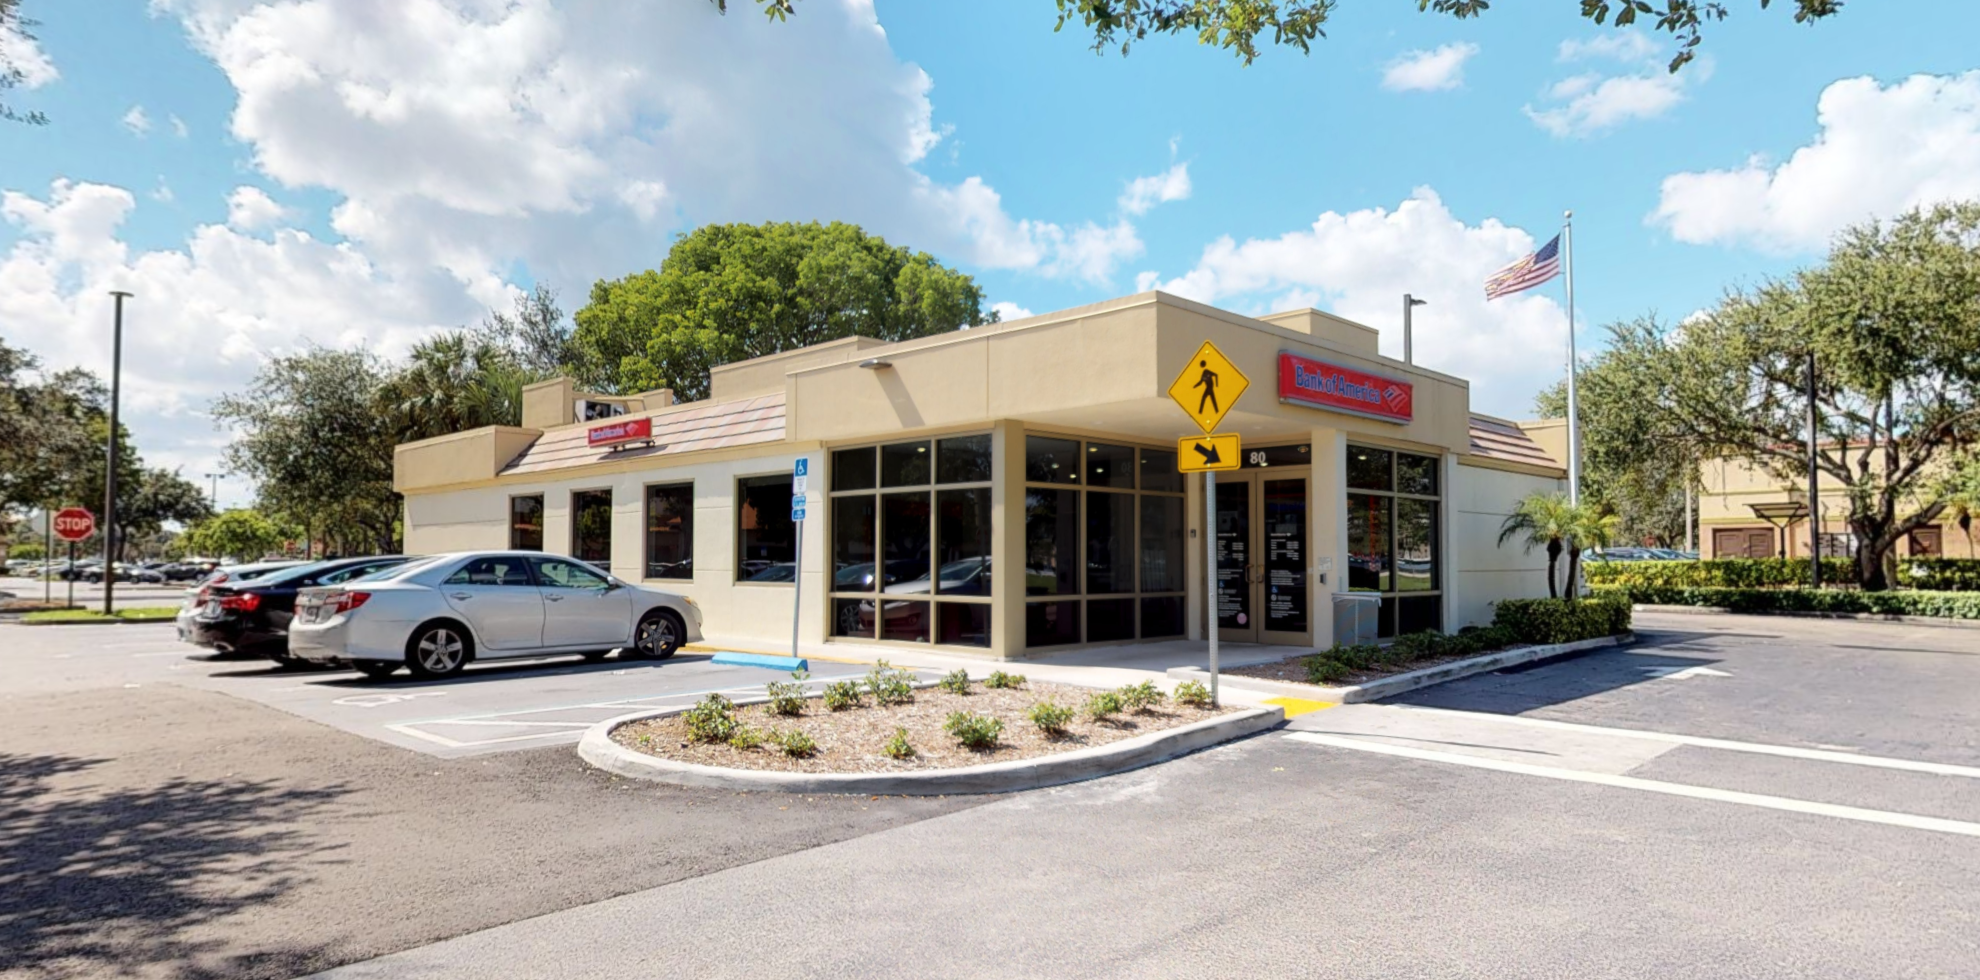 Bank of America financial center with drive-thru ATM and teller | 80 S Flamingo Rd, Pembroke Pines, FL 33027